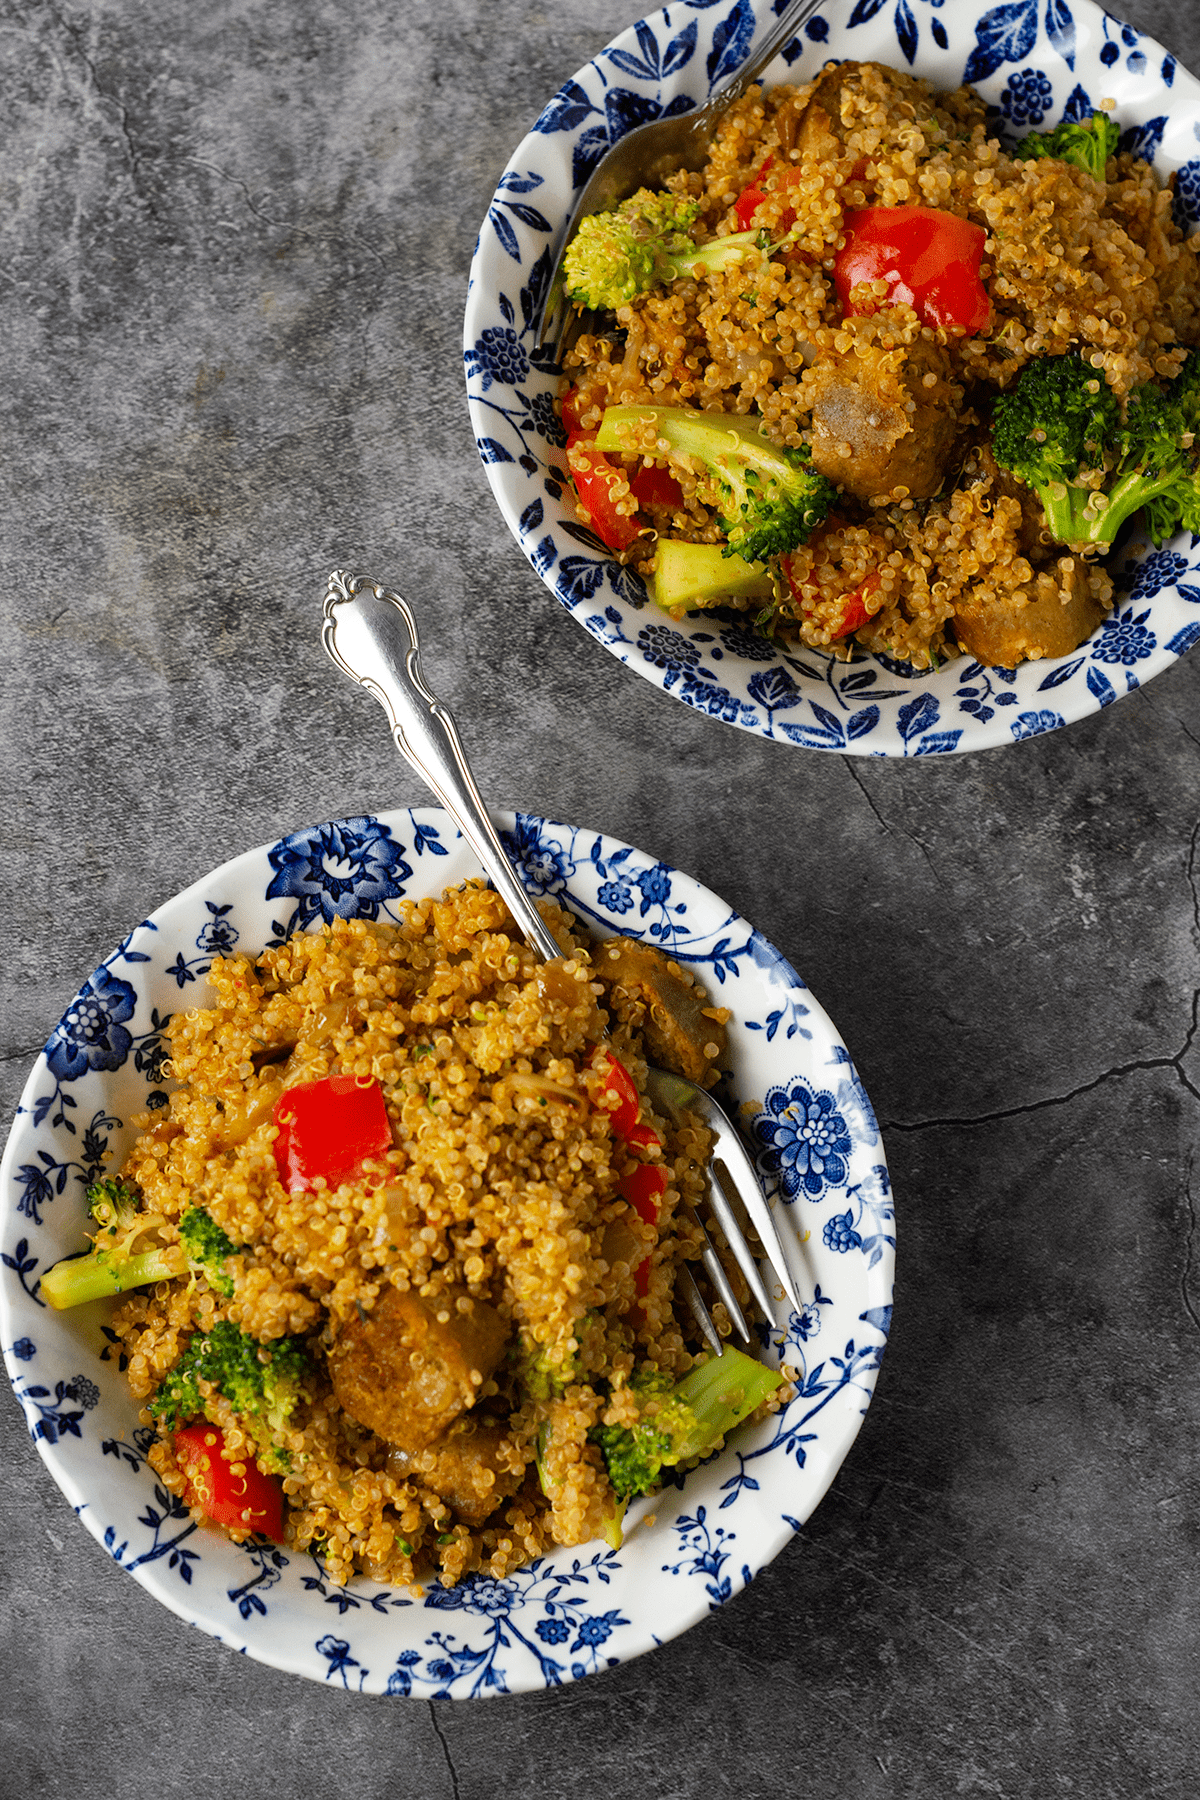 quinoa fried rice overlay in two white and blue floral bowls with two forks on a grey background